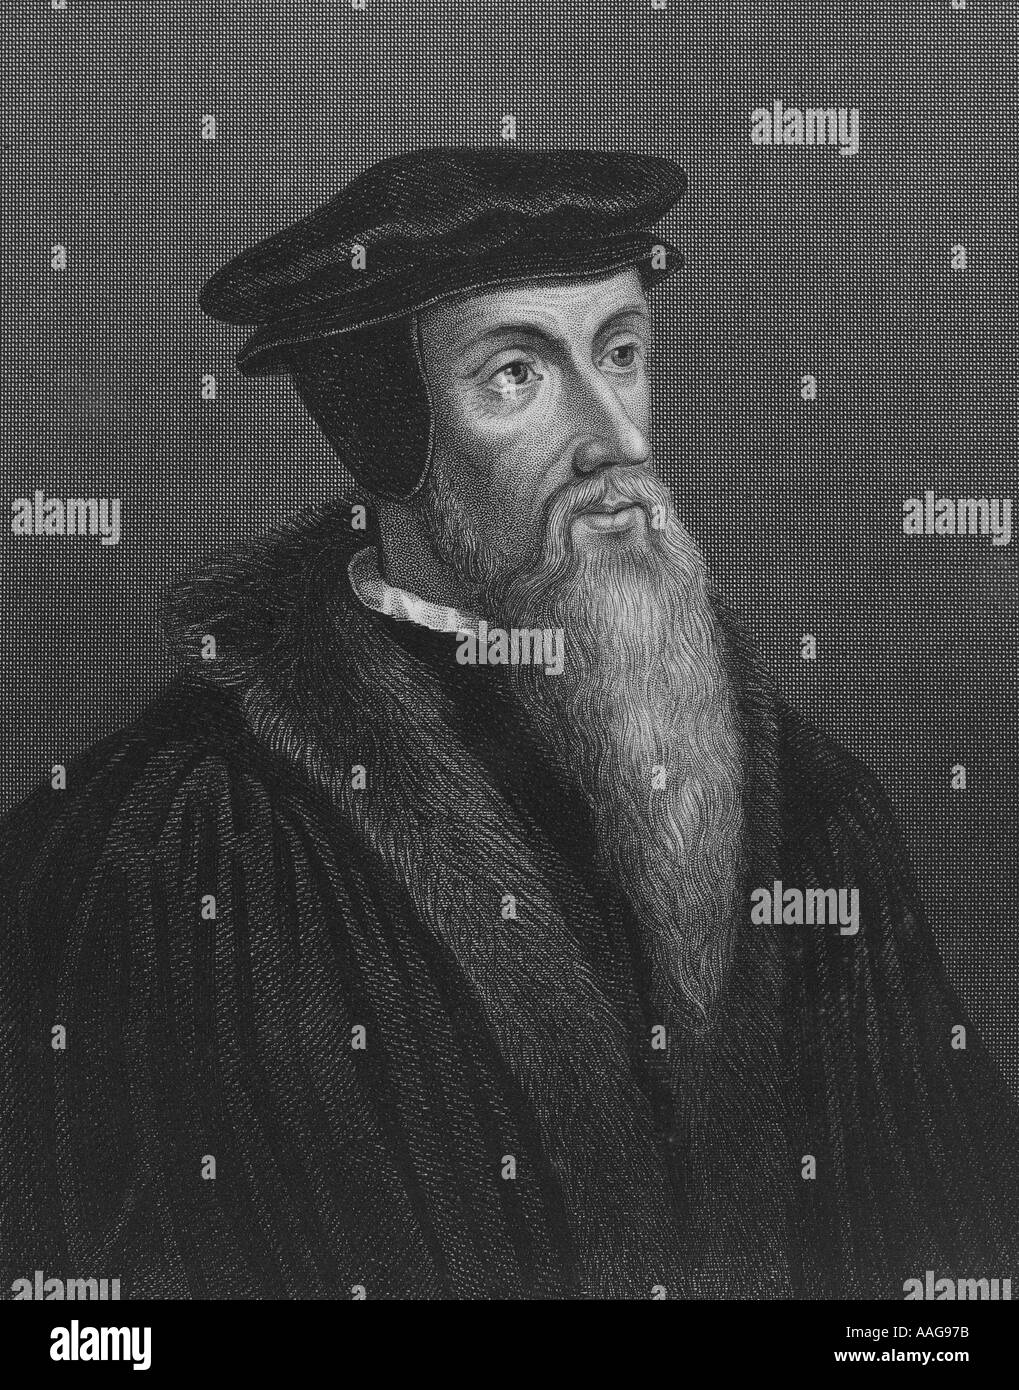 John Calvin 1509 1564 French reformer and theologian - Stock Image